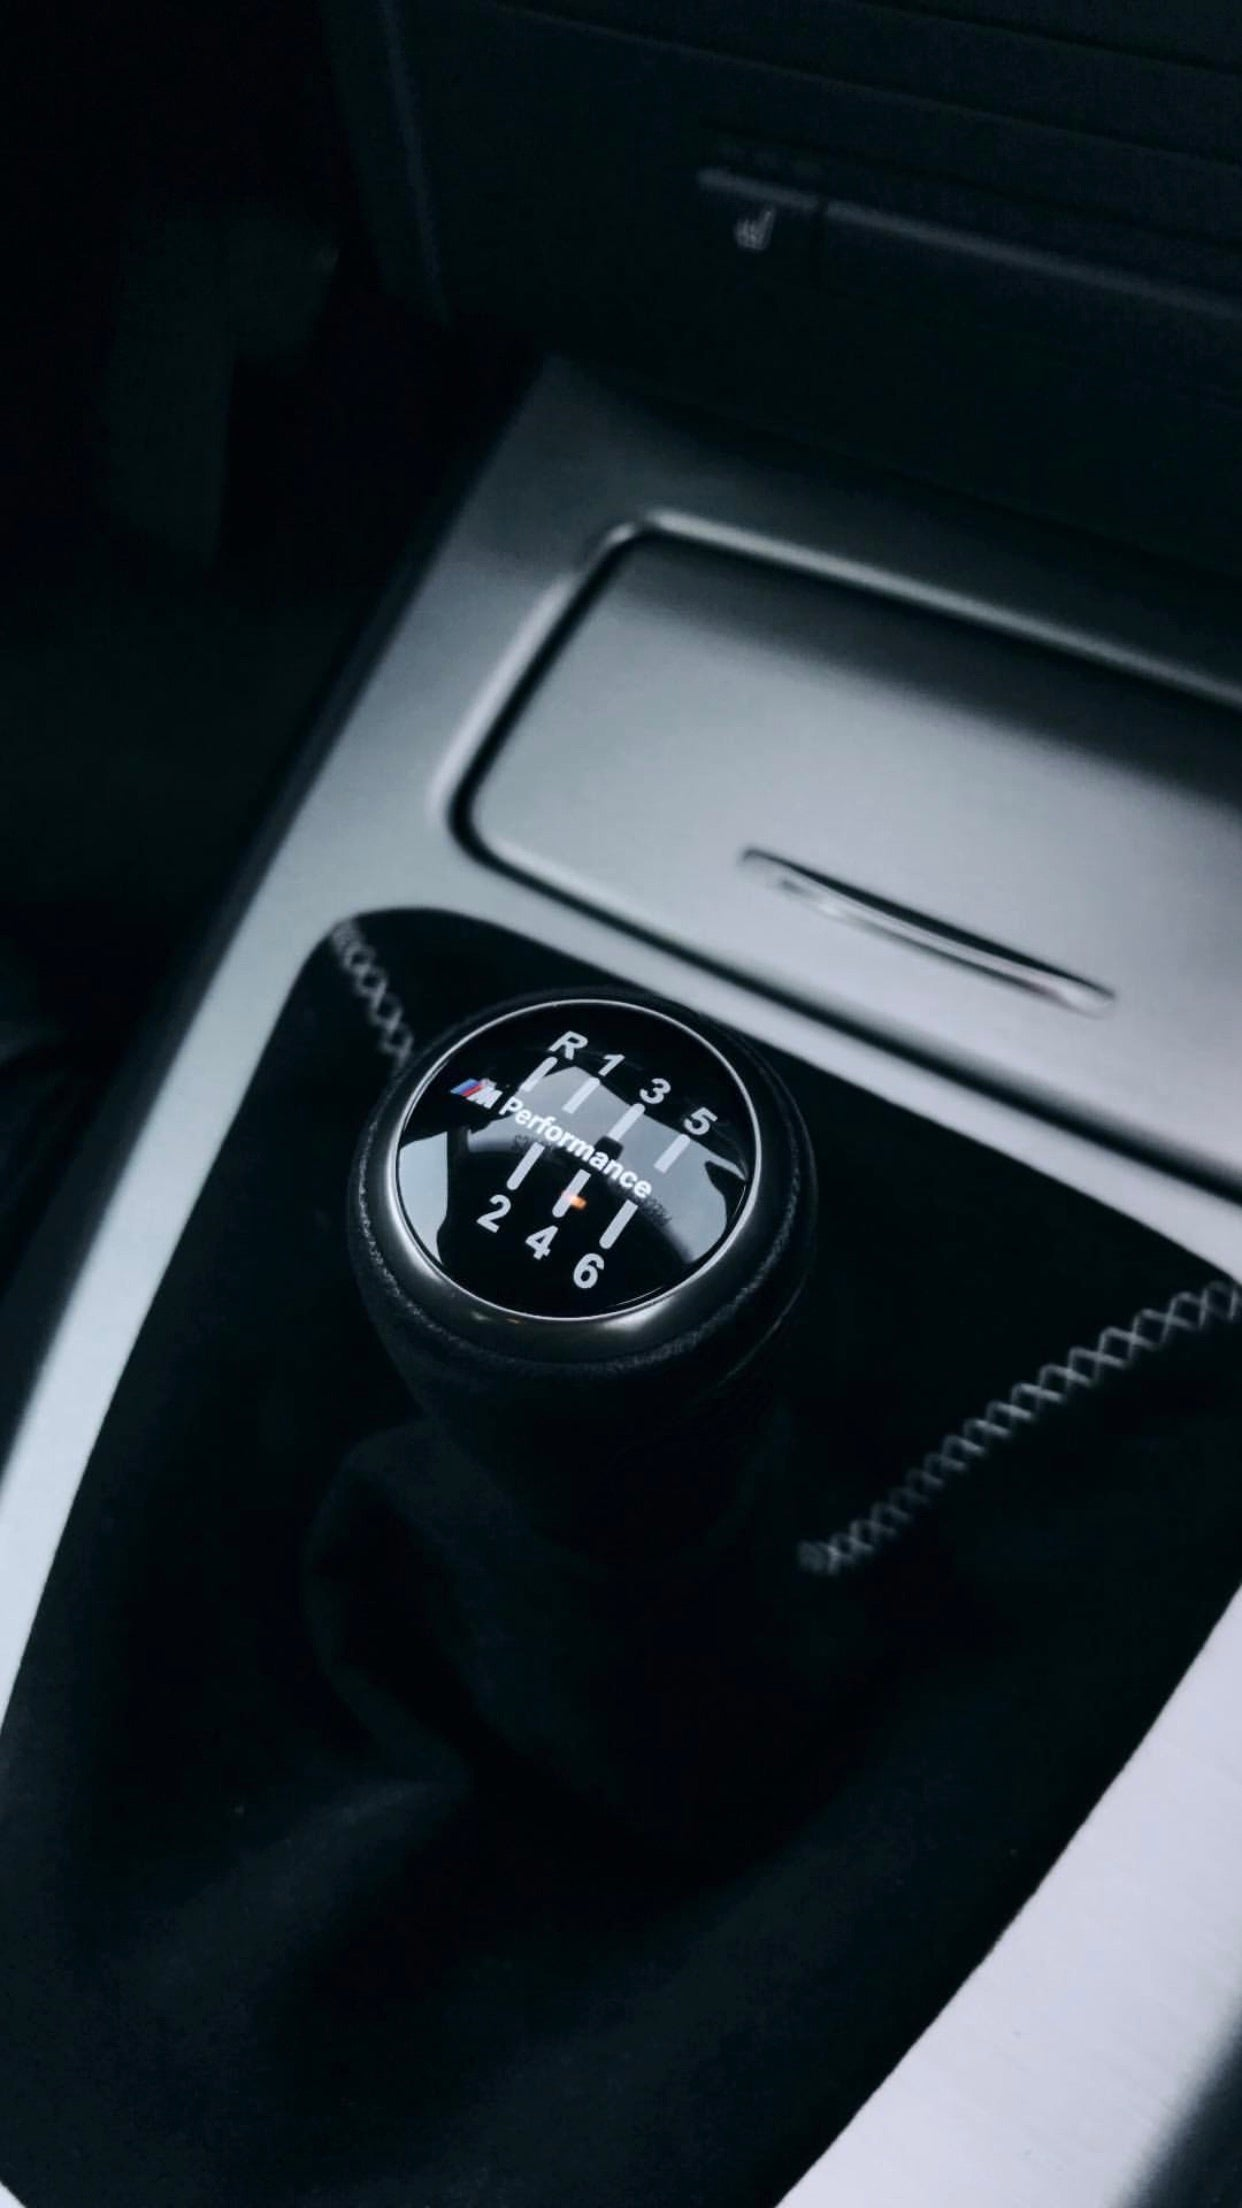 Carbon fiber Alcantara Manual shift knob